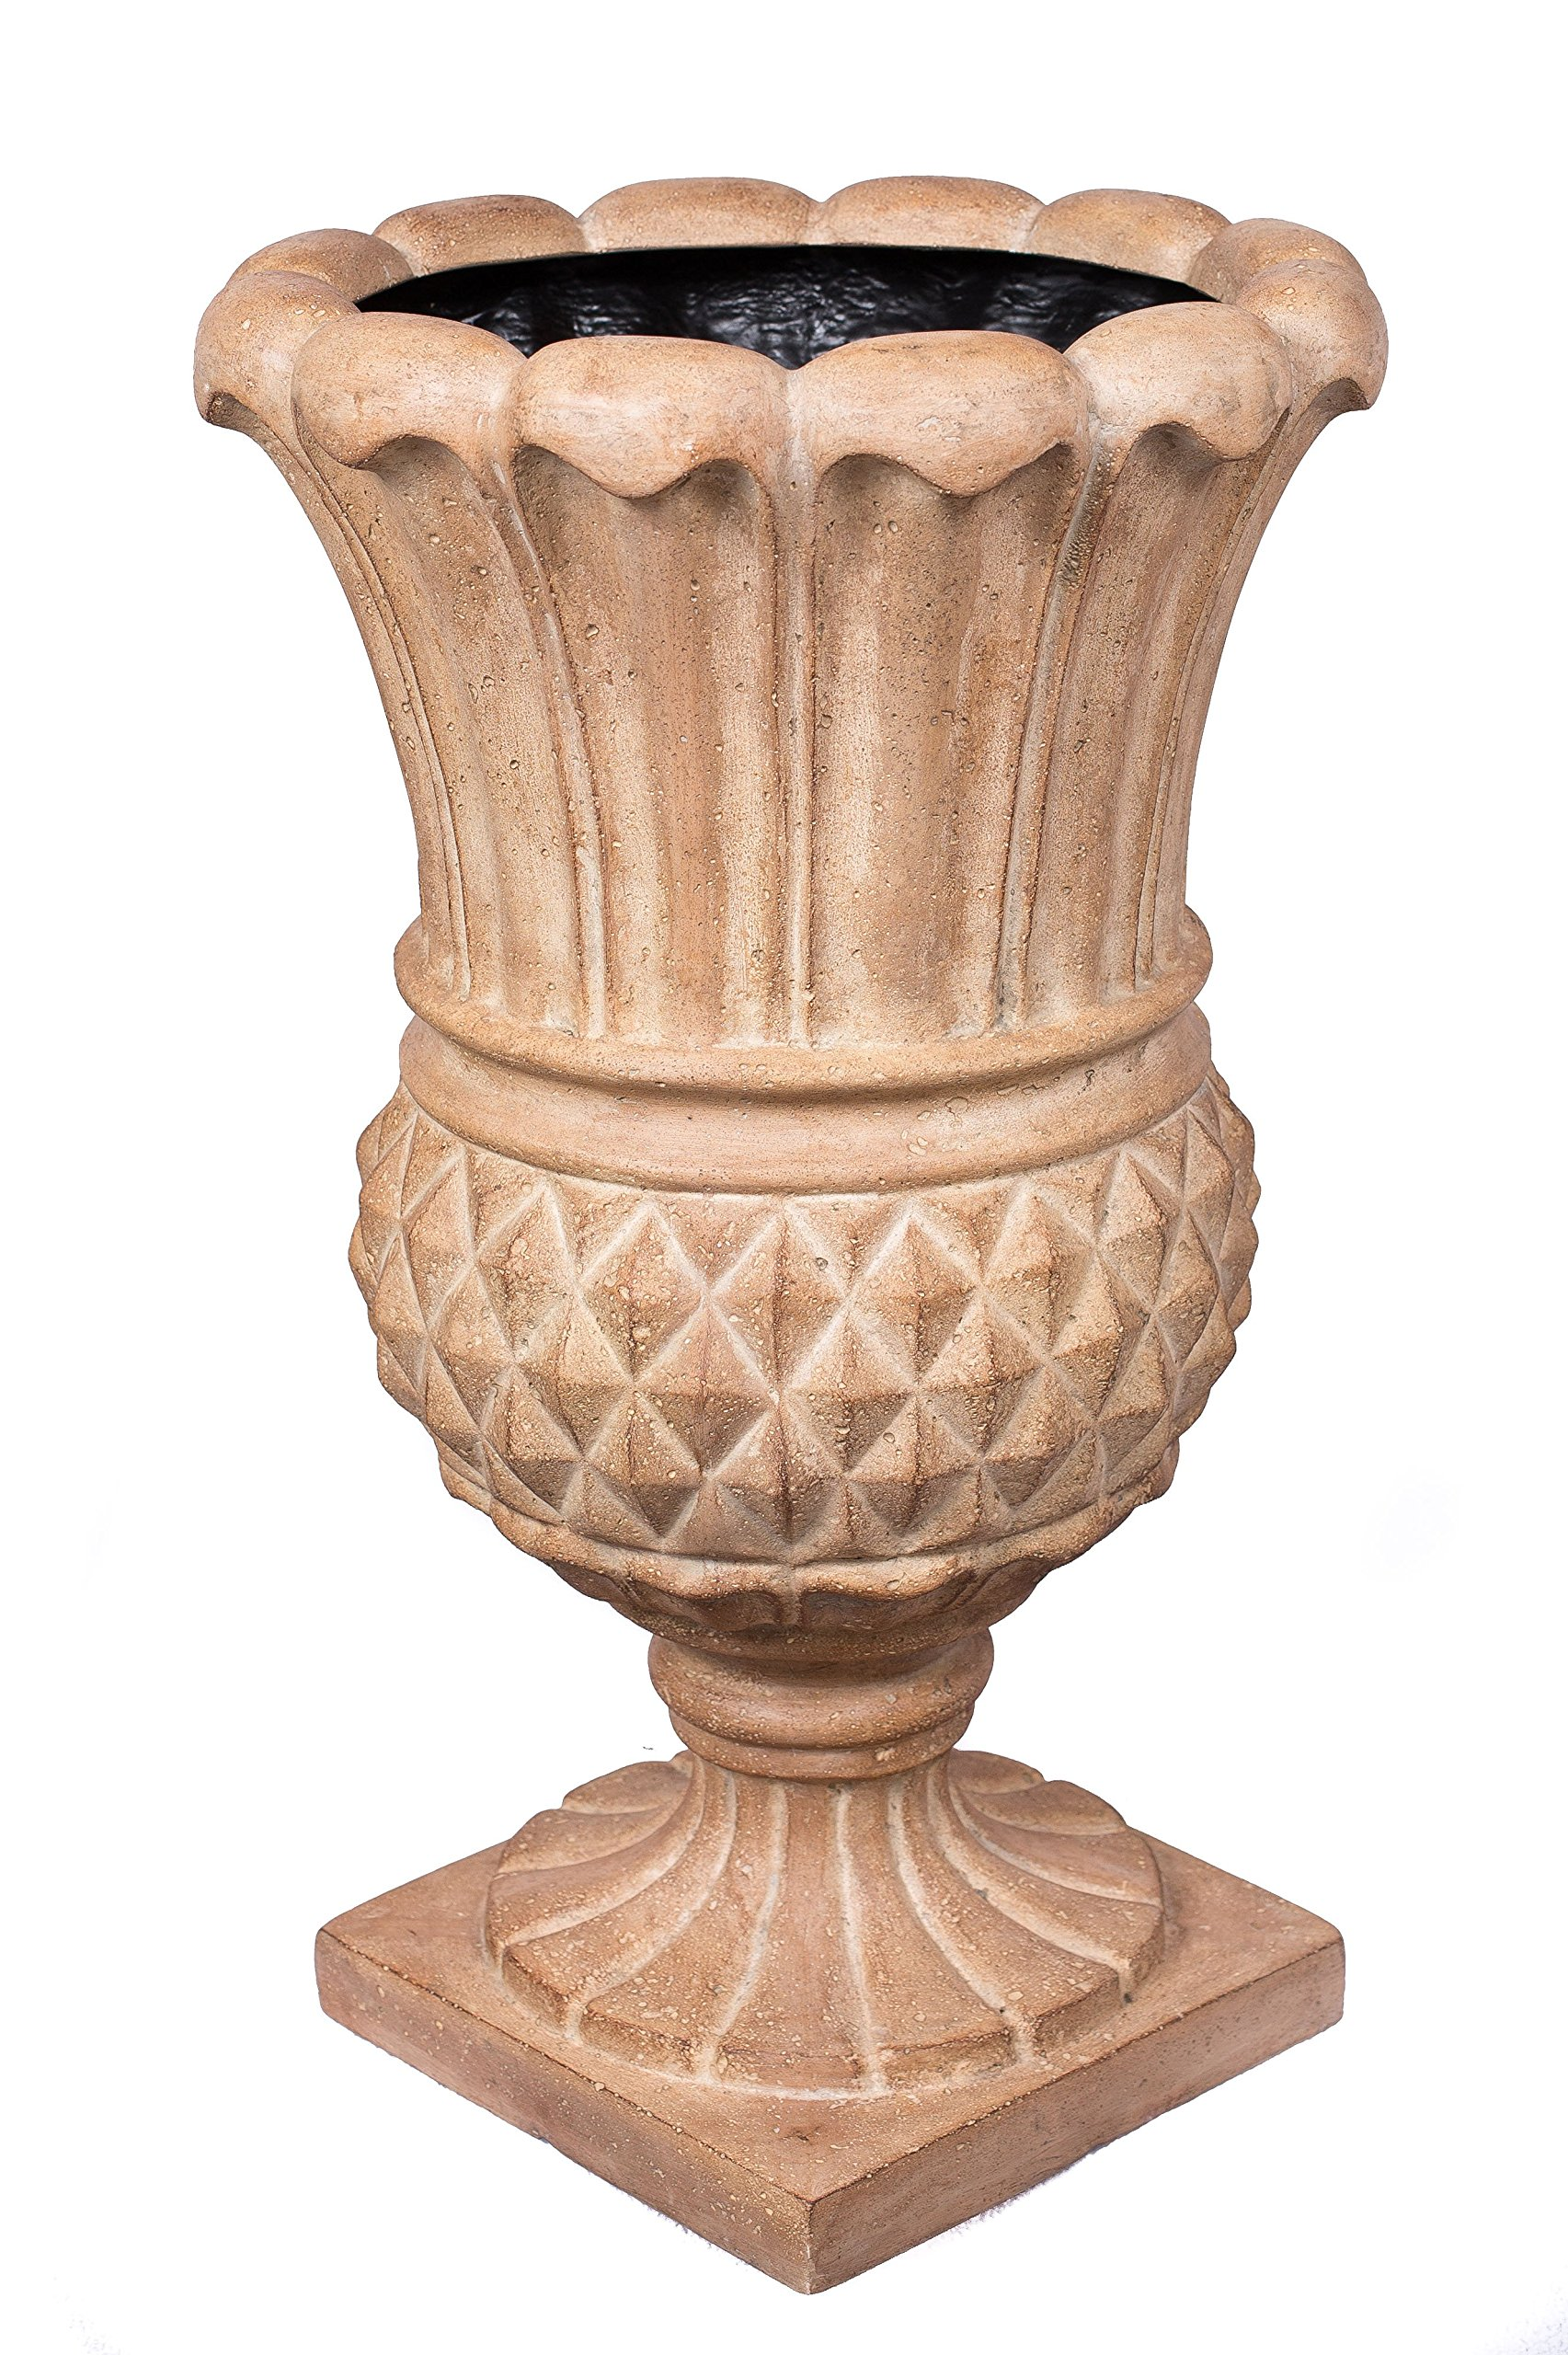 BirdRock Garden Pineapple Urn - Aged Ivory | Indoor Outdoor Planter Urn by BirdRock Home